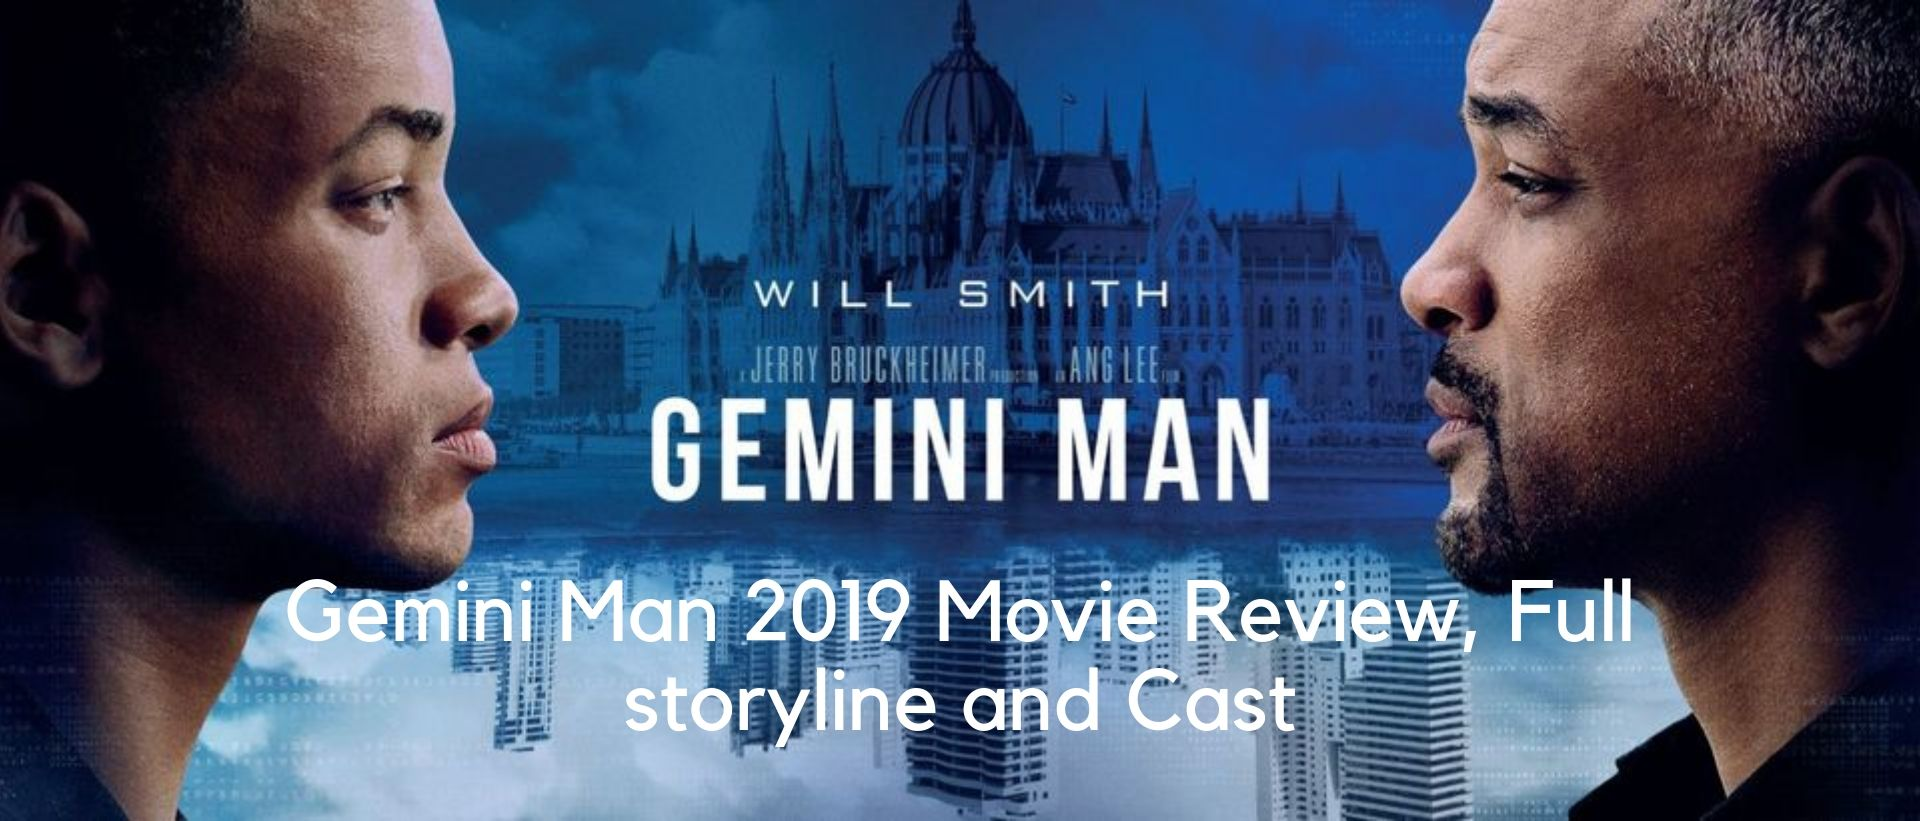 Gemini Man 2019 Movie Review, Full storyline and Cast